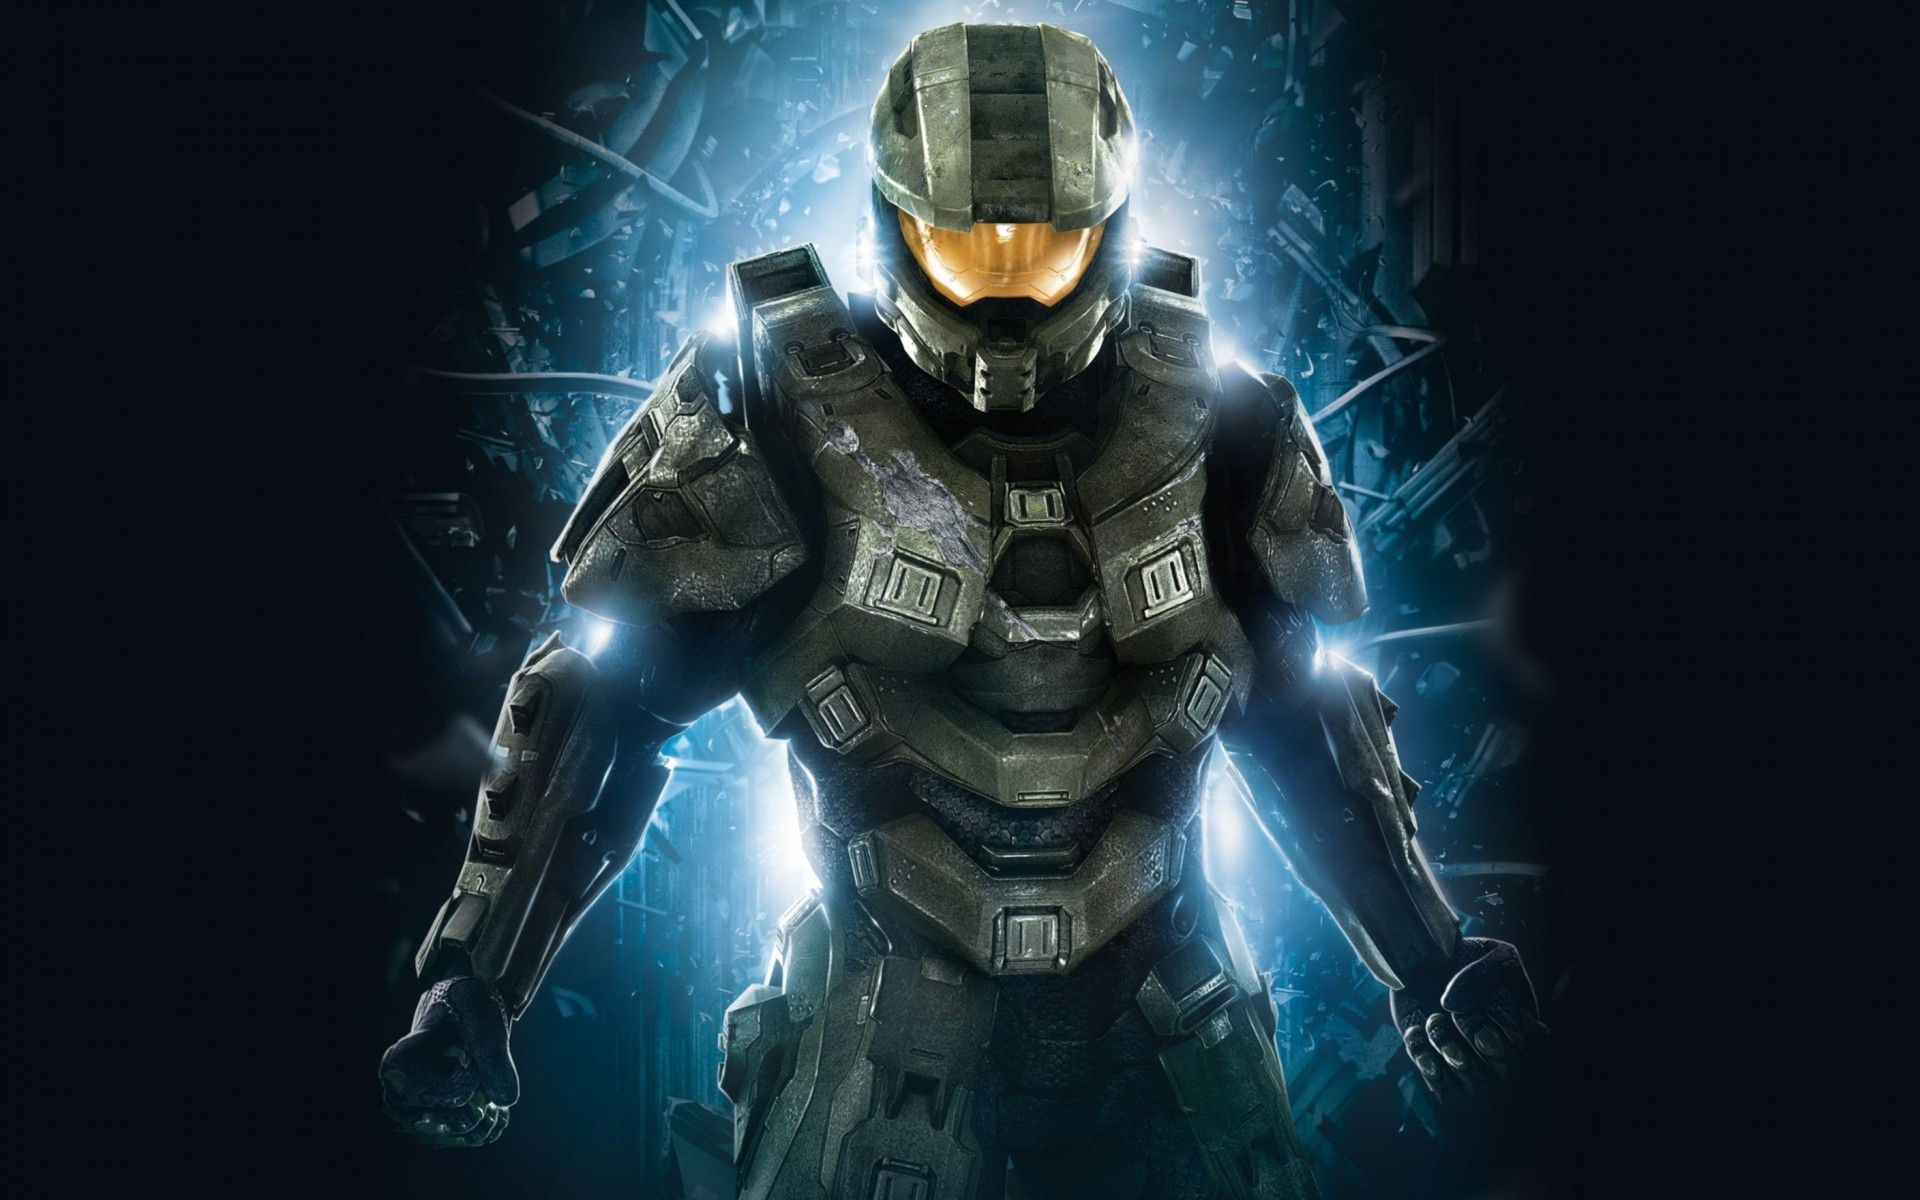 Master Chief in Halo 4 Wide Wallpaper